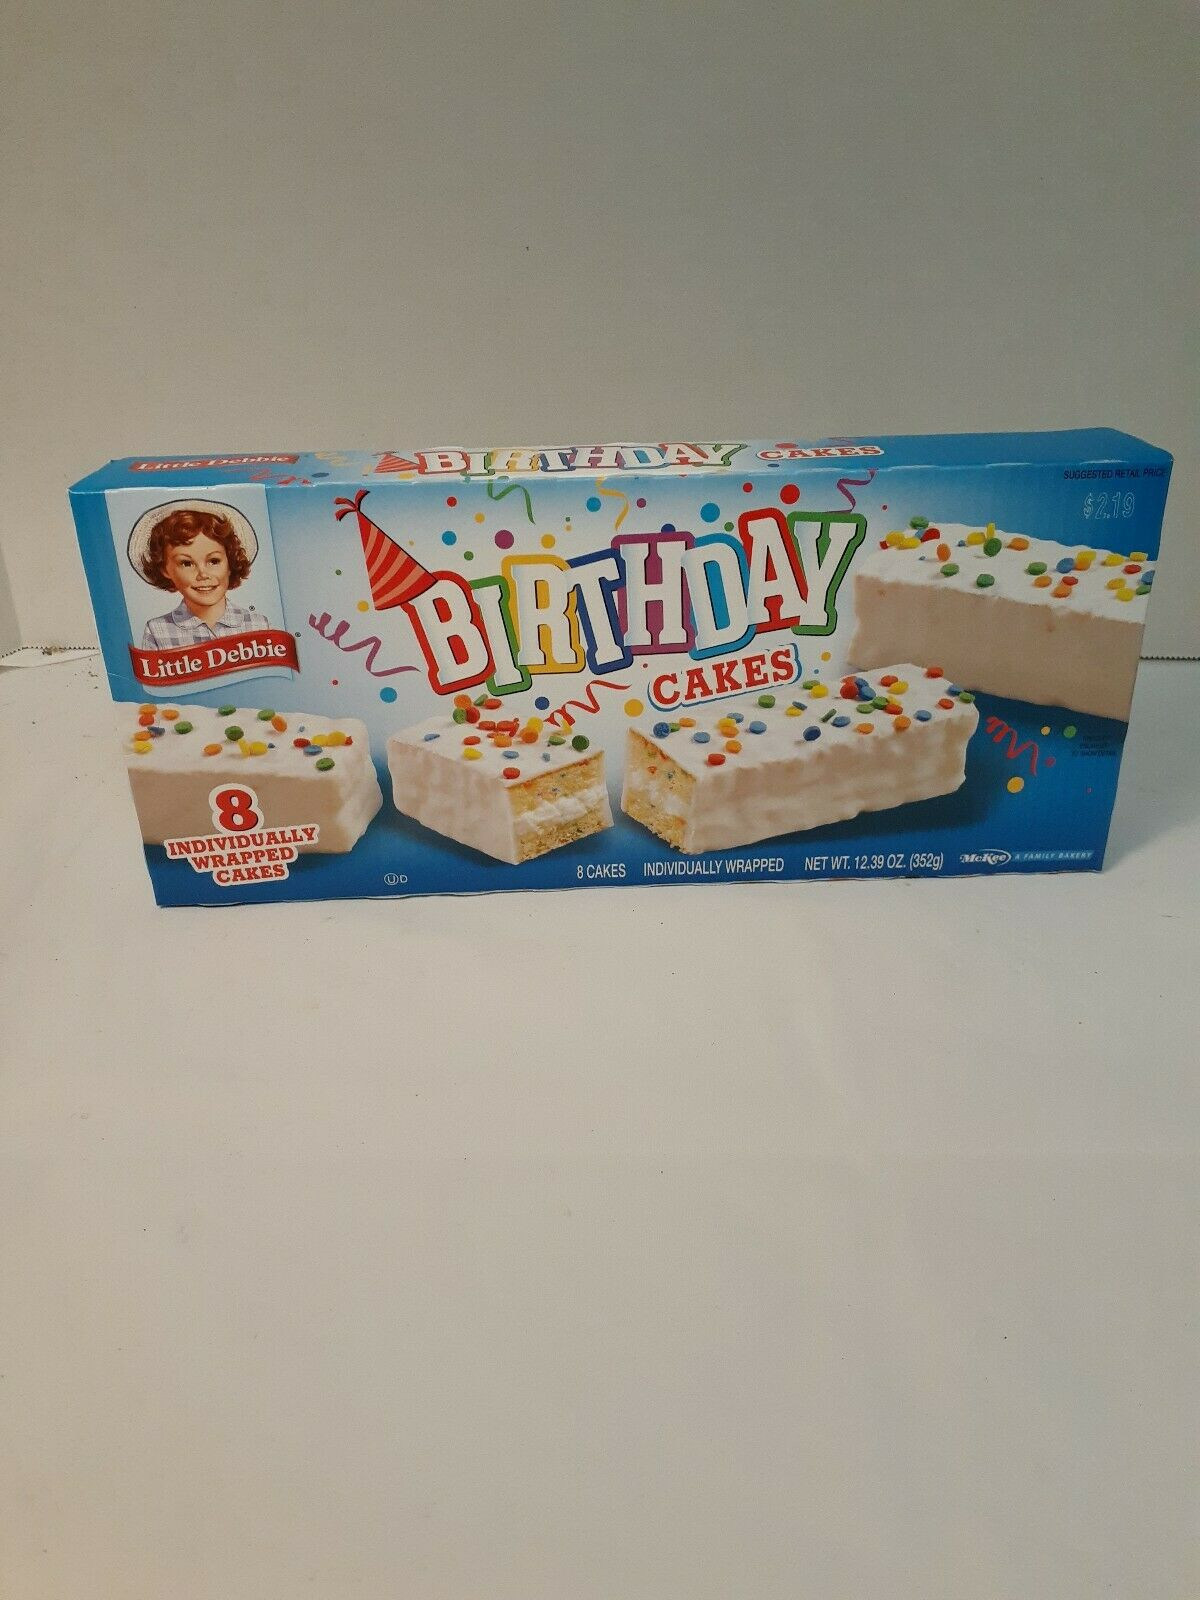 Pleasant Little Debbie Birthday Cakes 24 75 Oz For Sale Online Funny Birthday Cards Online Eattedamsfinfo